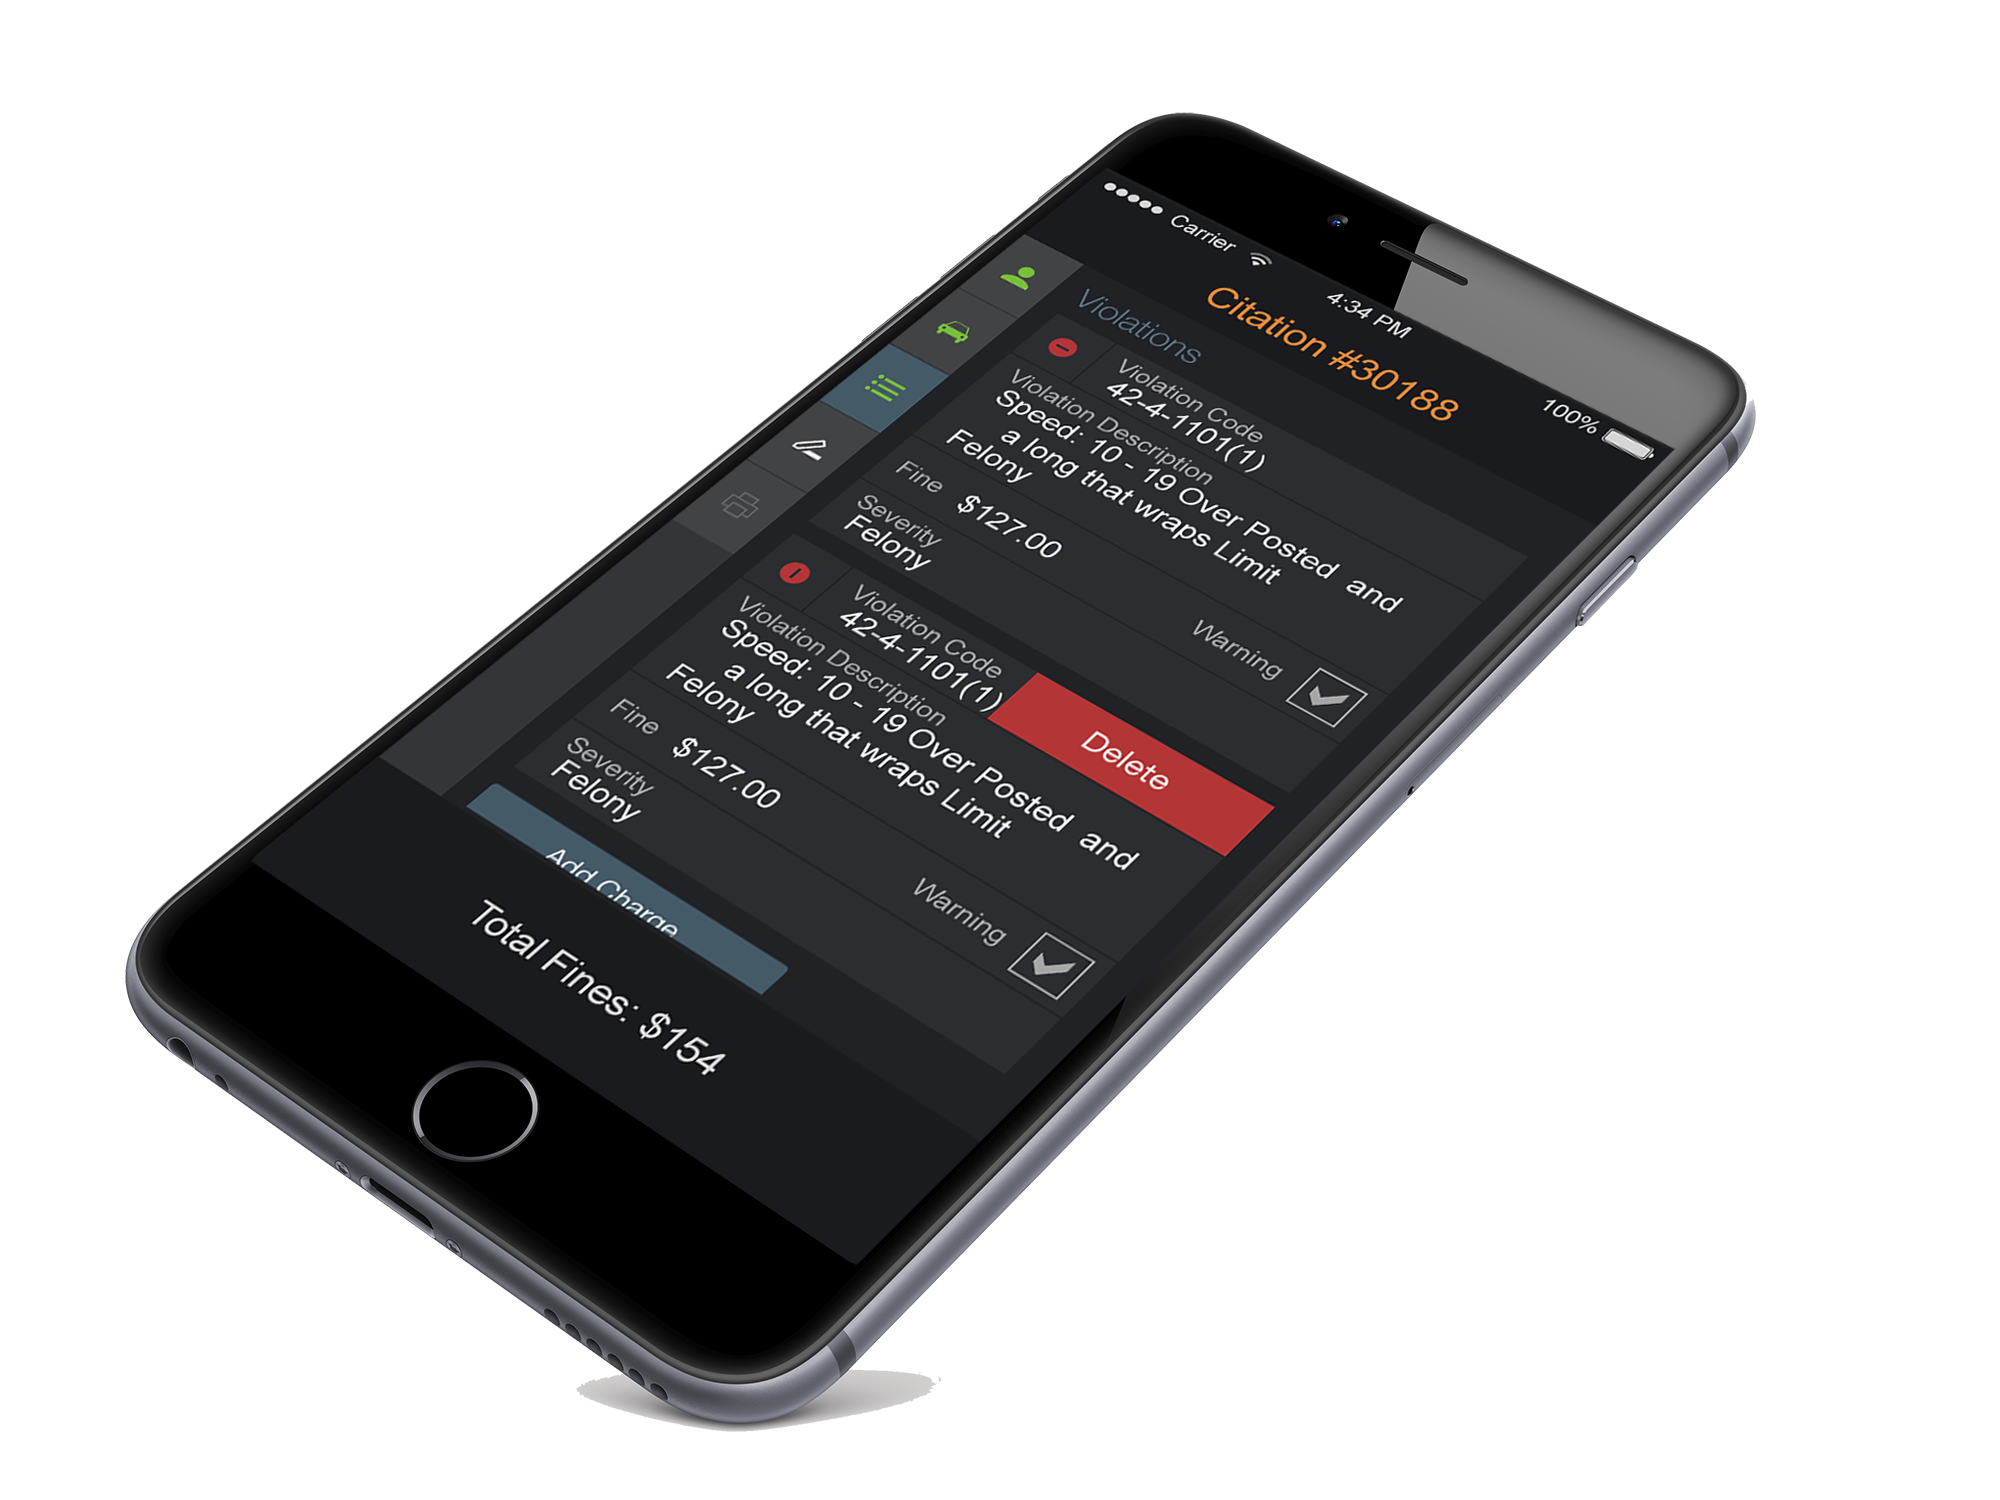 mobile citation charges on iPhone